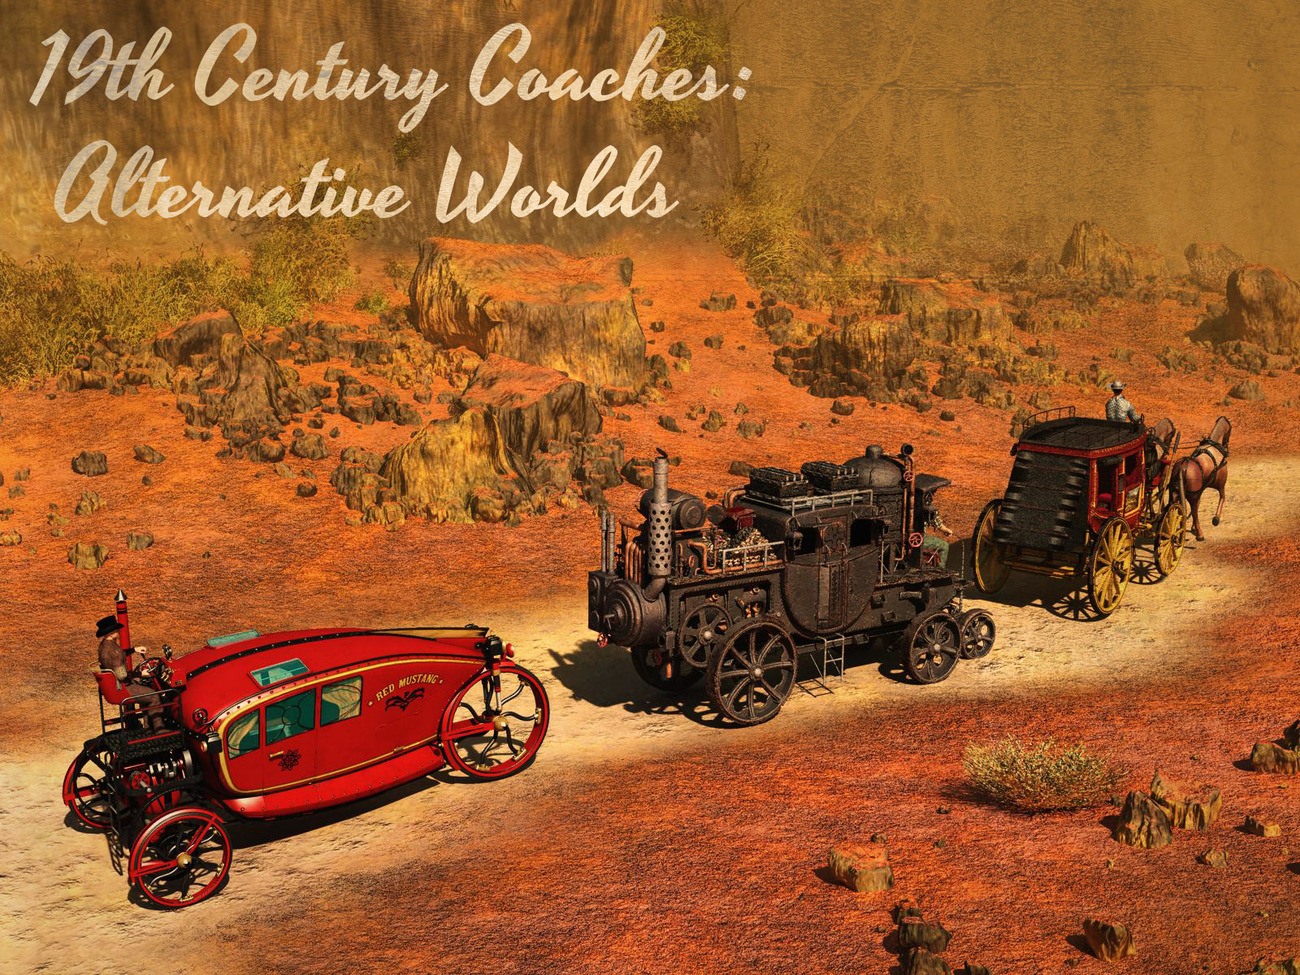 19th Century Coaches: Alternative Worlds